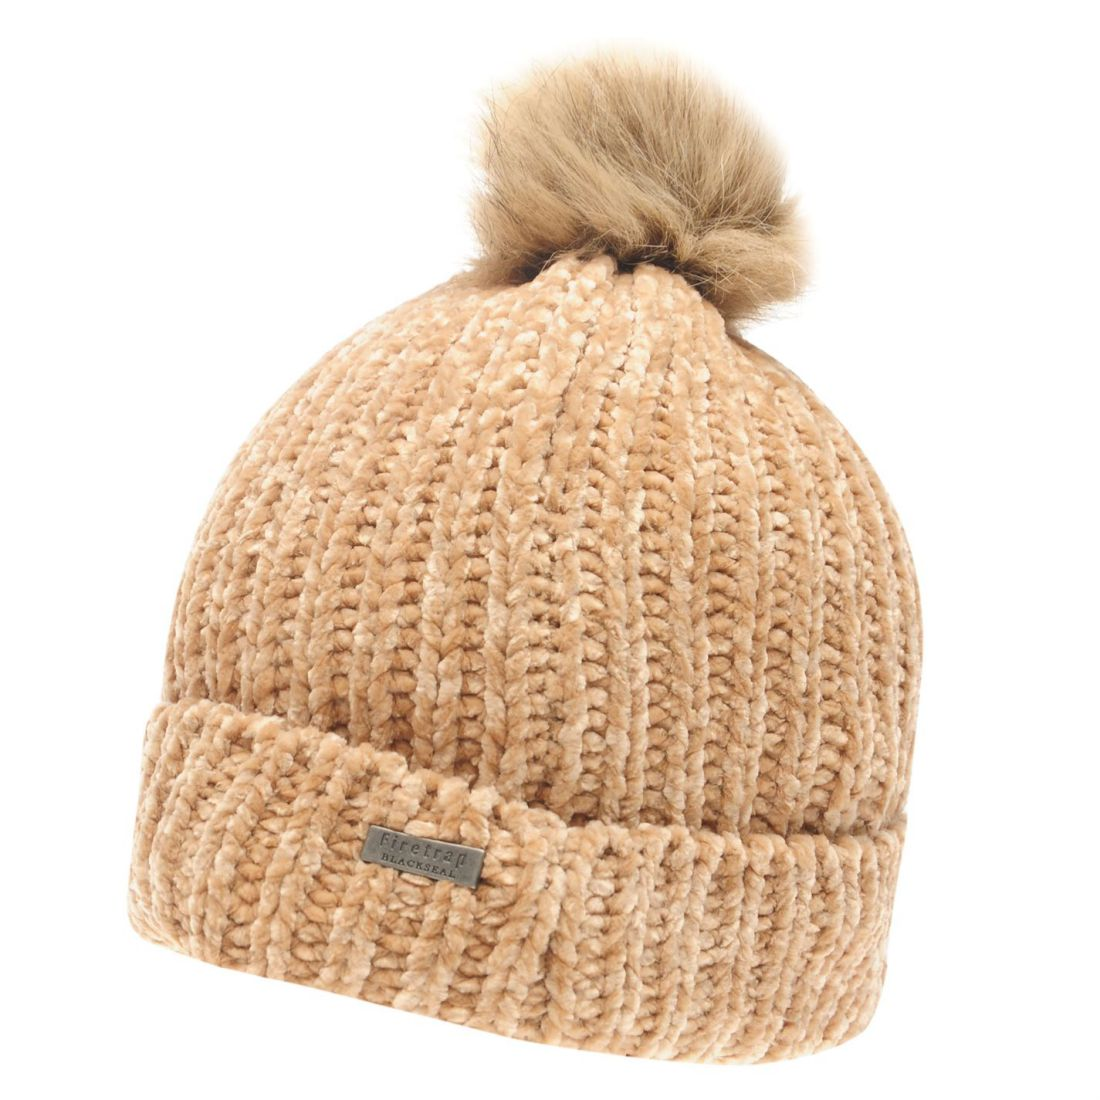 Details about Firetrap Chenille Hat Ladies Beanie Pattern Warm Faux Fur  Knitwear 0e1ff71be